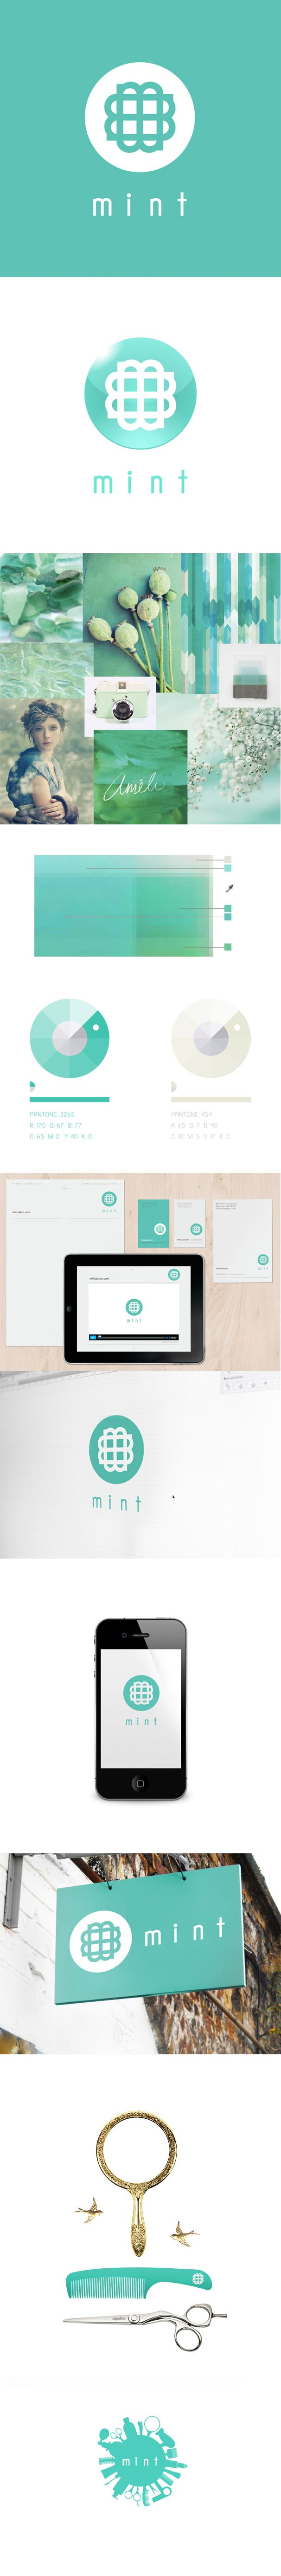 Mint Salon Design | #stationary #corporate #design #corporatedesign #logo #identity #branding #marketing <<< repinned by an #advertising agency from #Hamburg / #Germany - www.BlickeDeeler.de | Follow us on www.facebook.com/BlickeDeeler